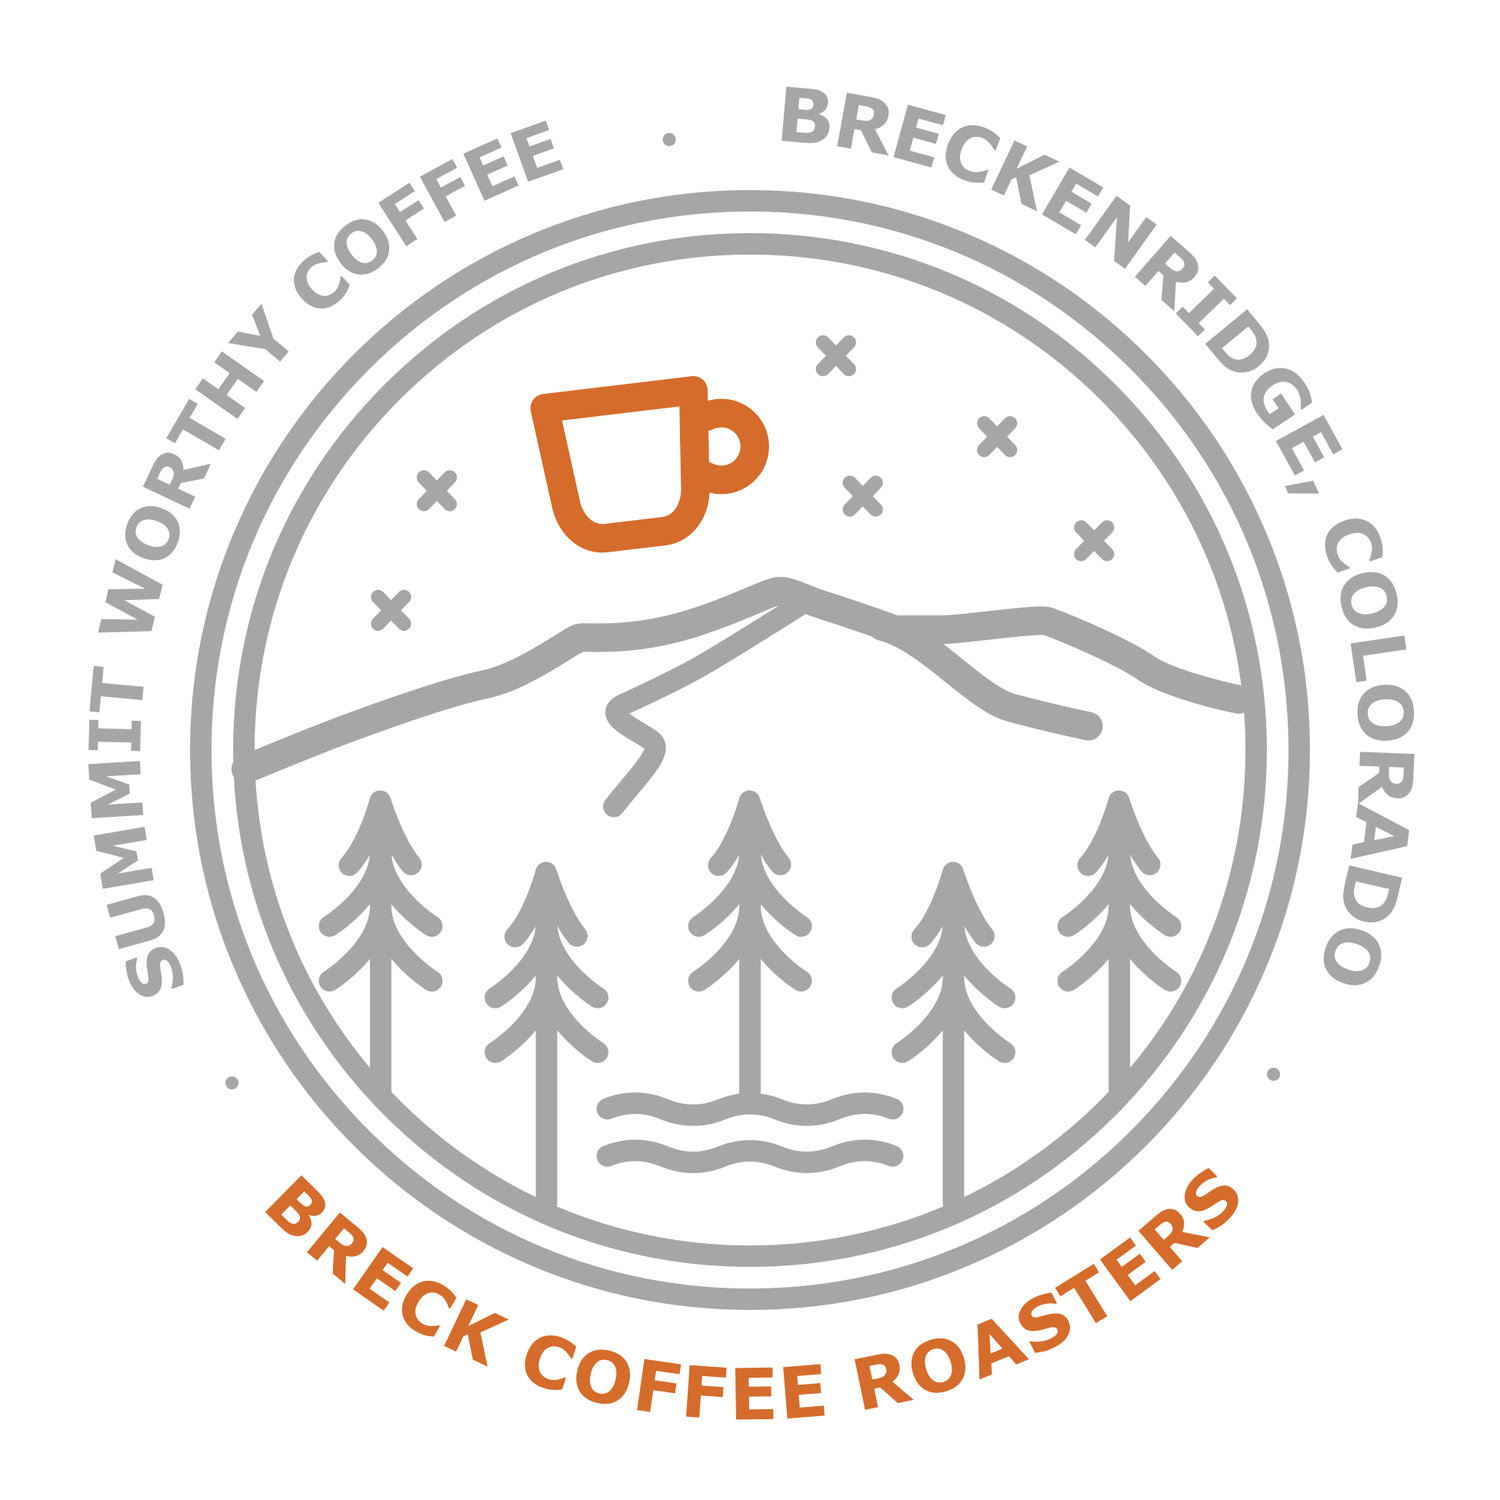 Breckenridge Coffee Roasters